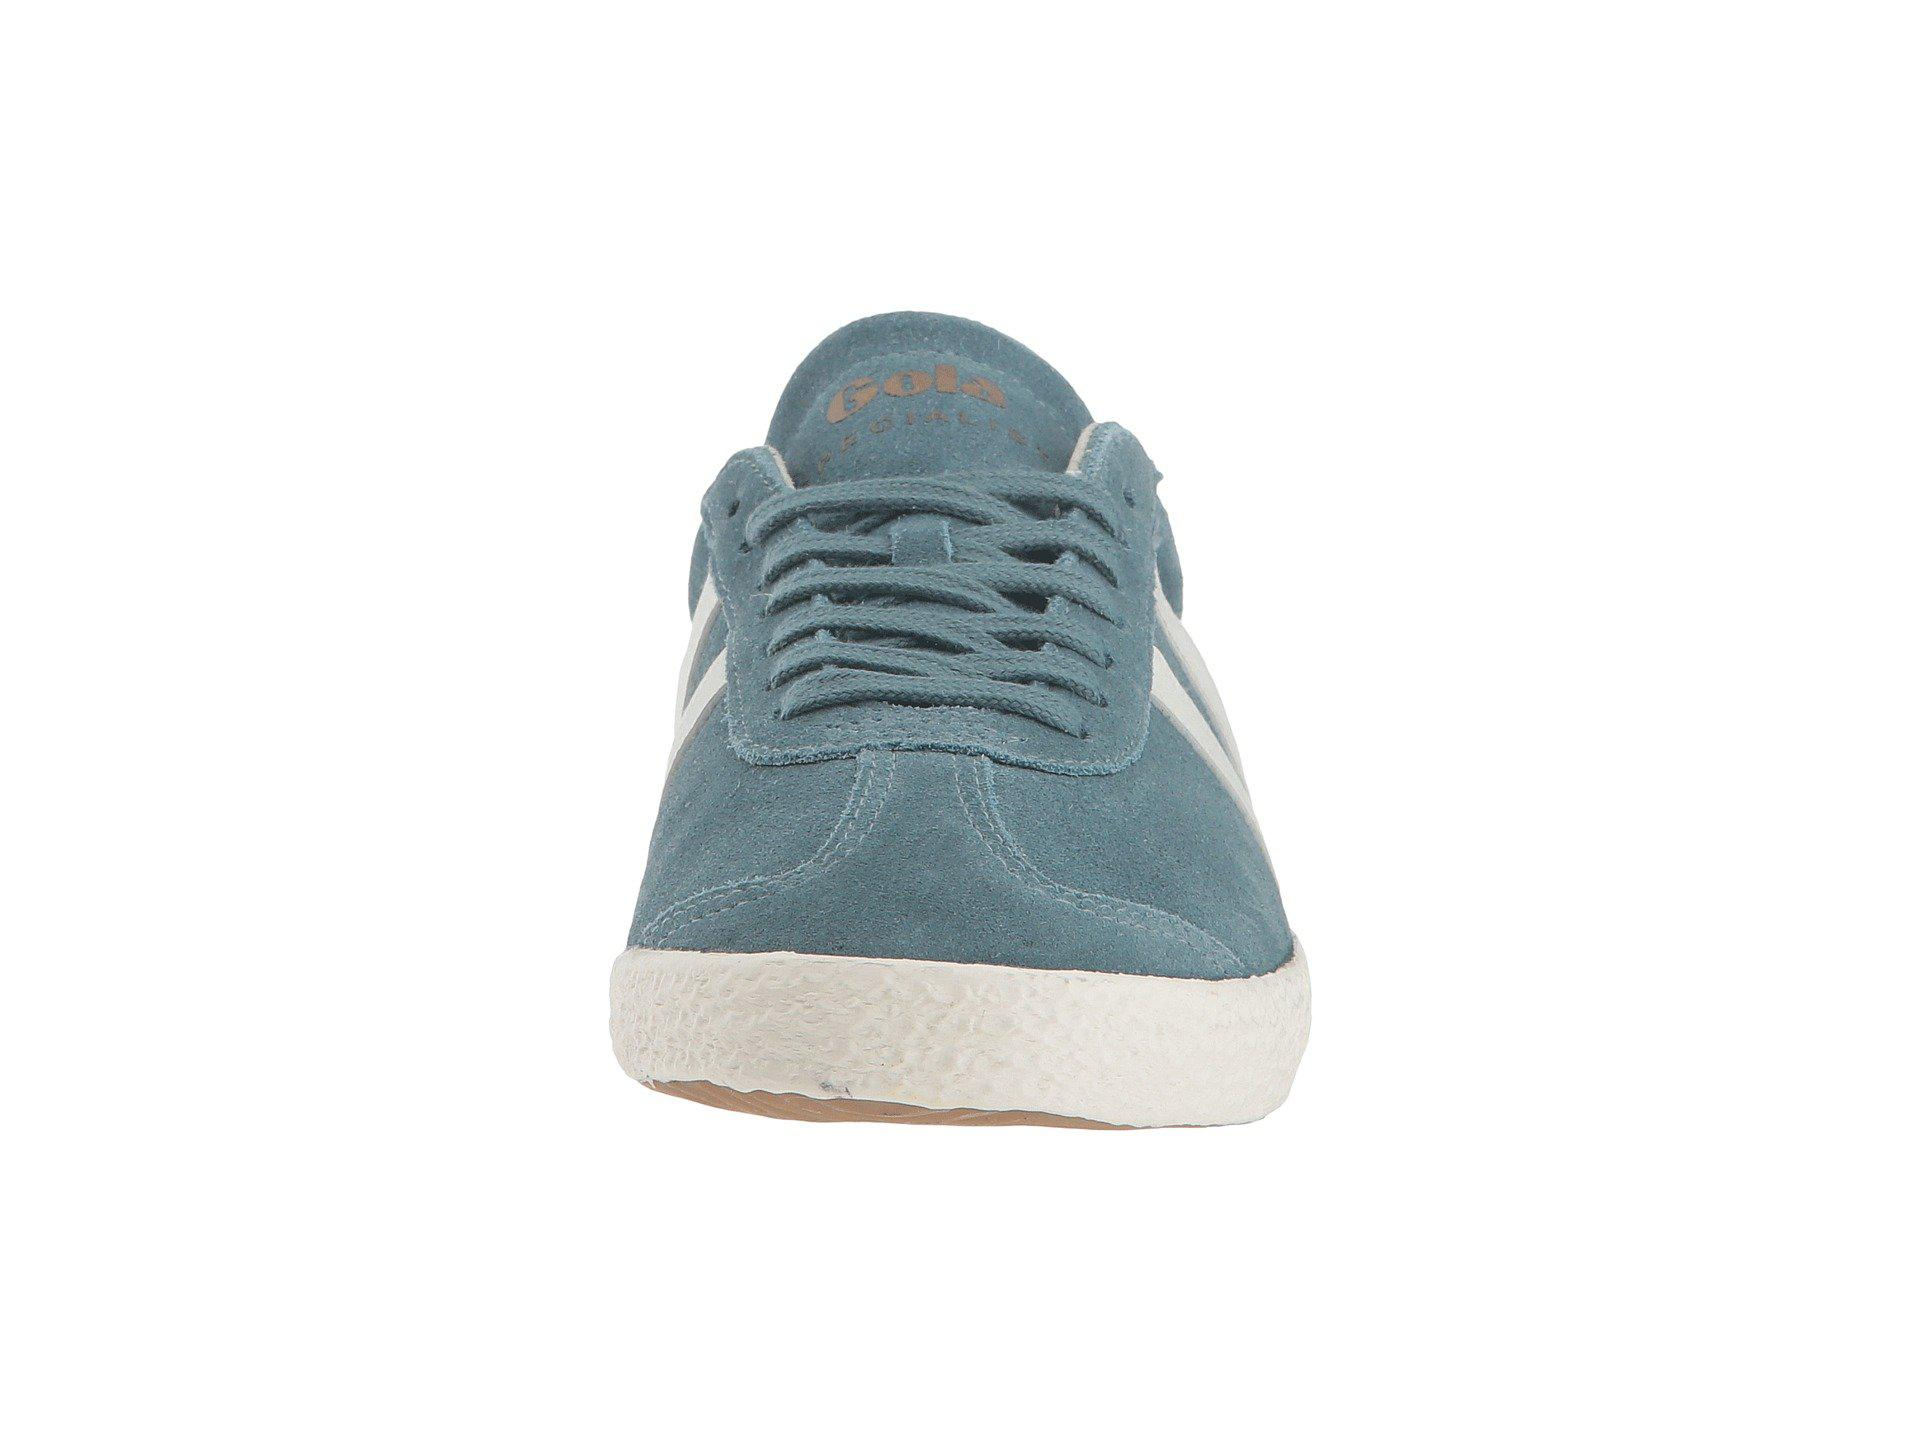 san francisco 721dc 0b8f0 Lyst - Gola Specialist (indian Teal off-white) Women s Shoes in Blue ...